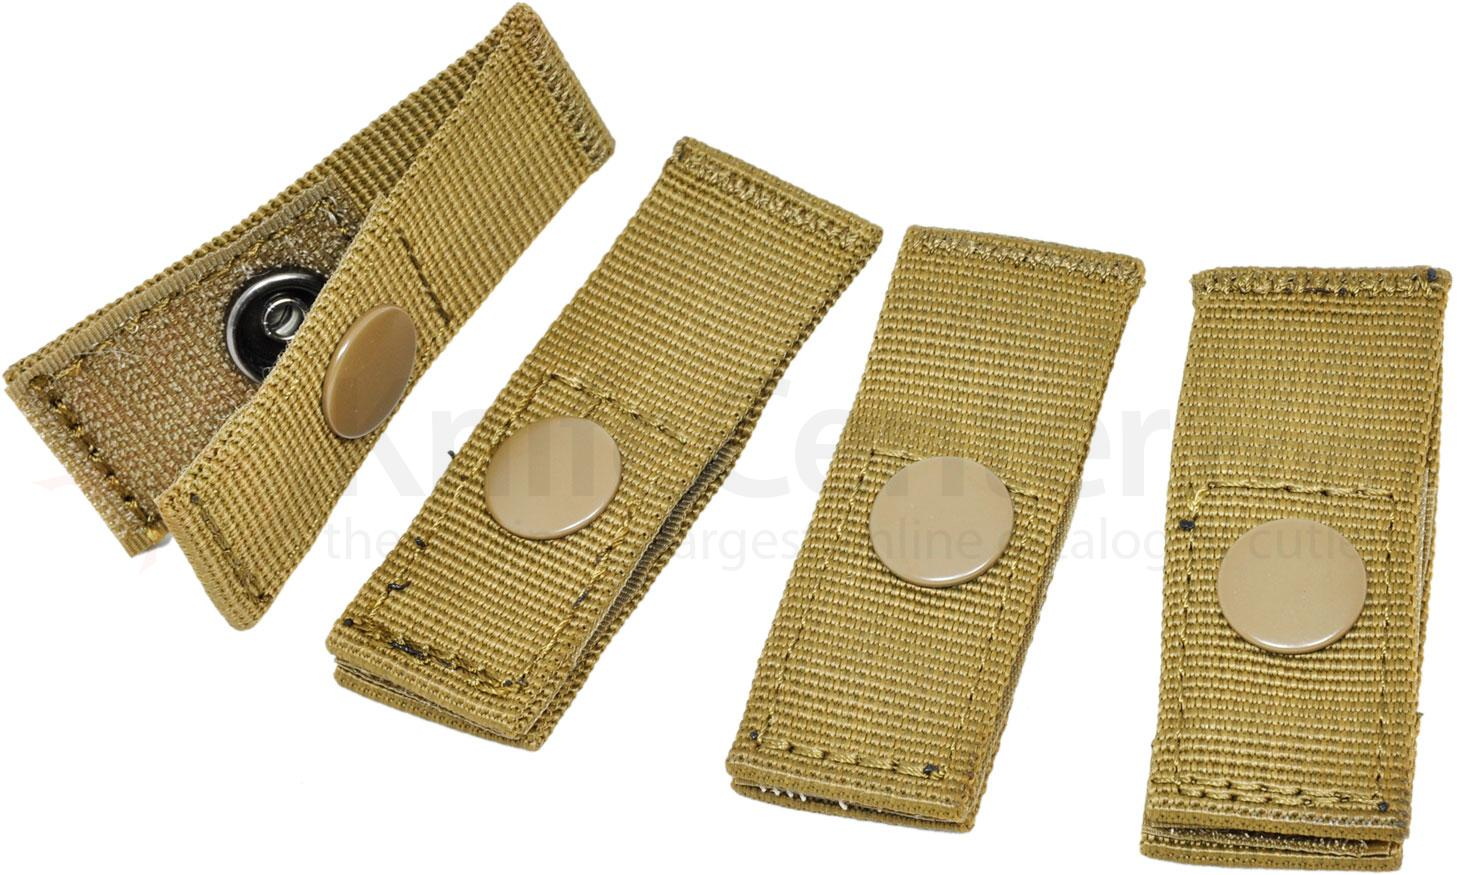 Hazard 4 MOLLE Pal Mounting Joints, Set of 4, Coyote